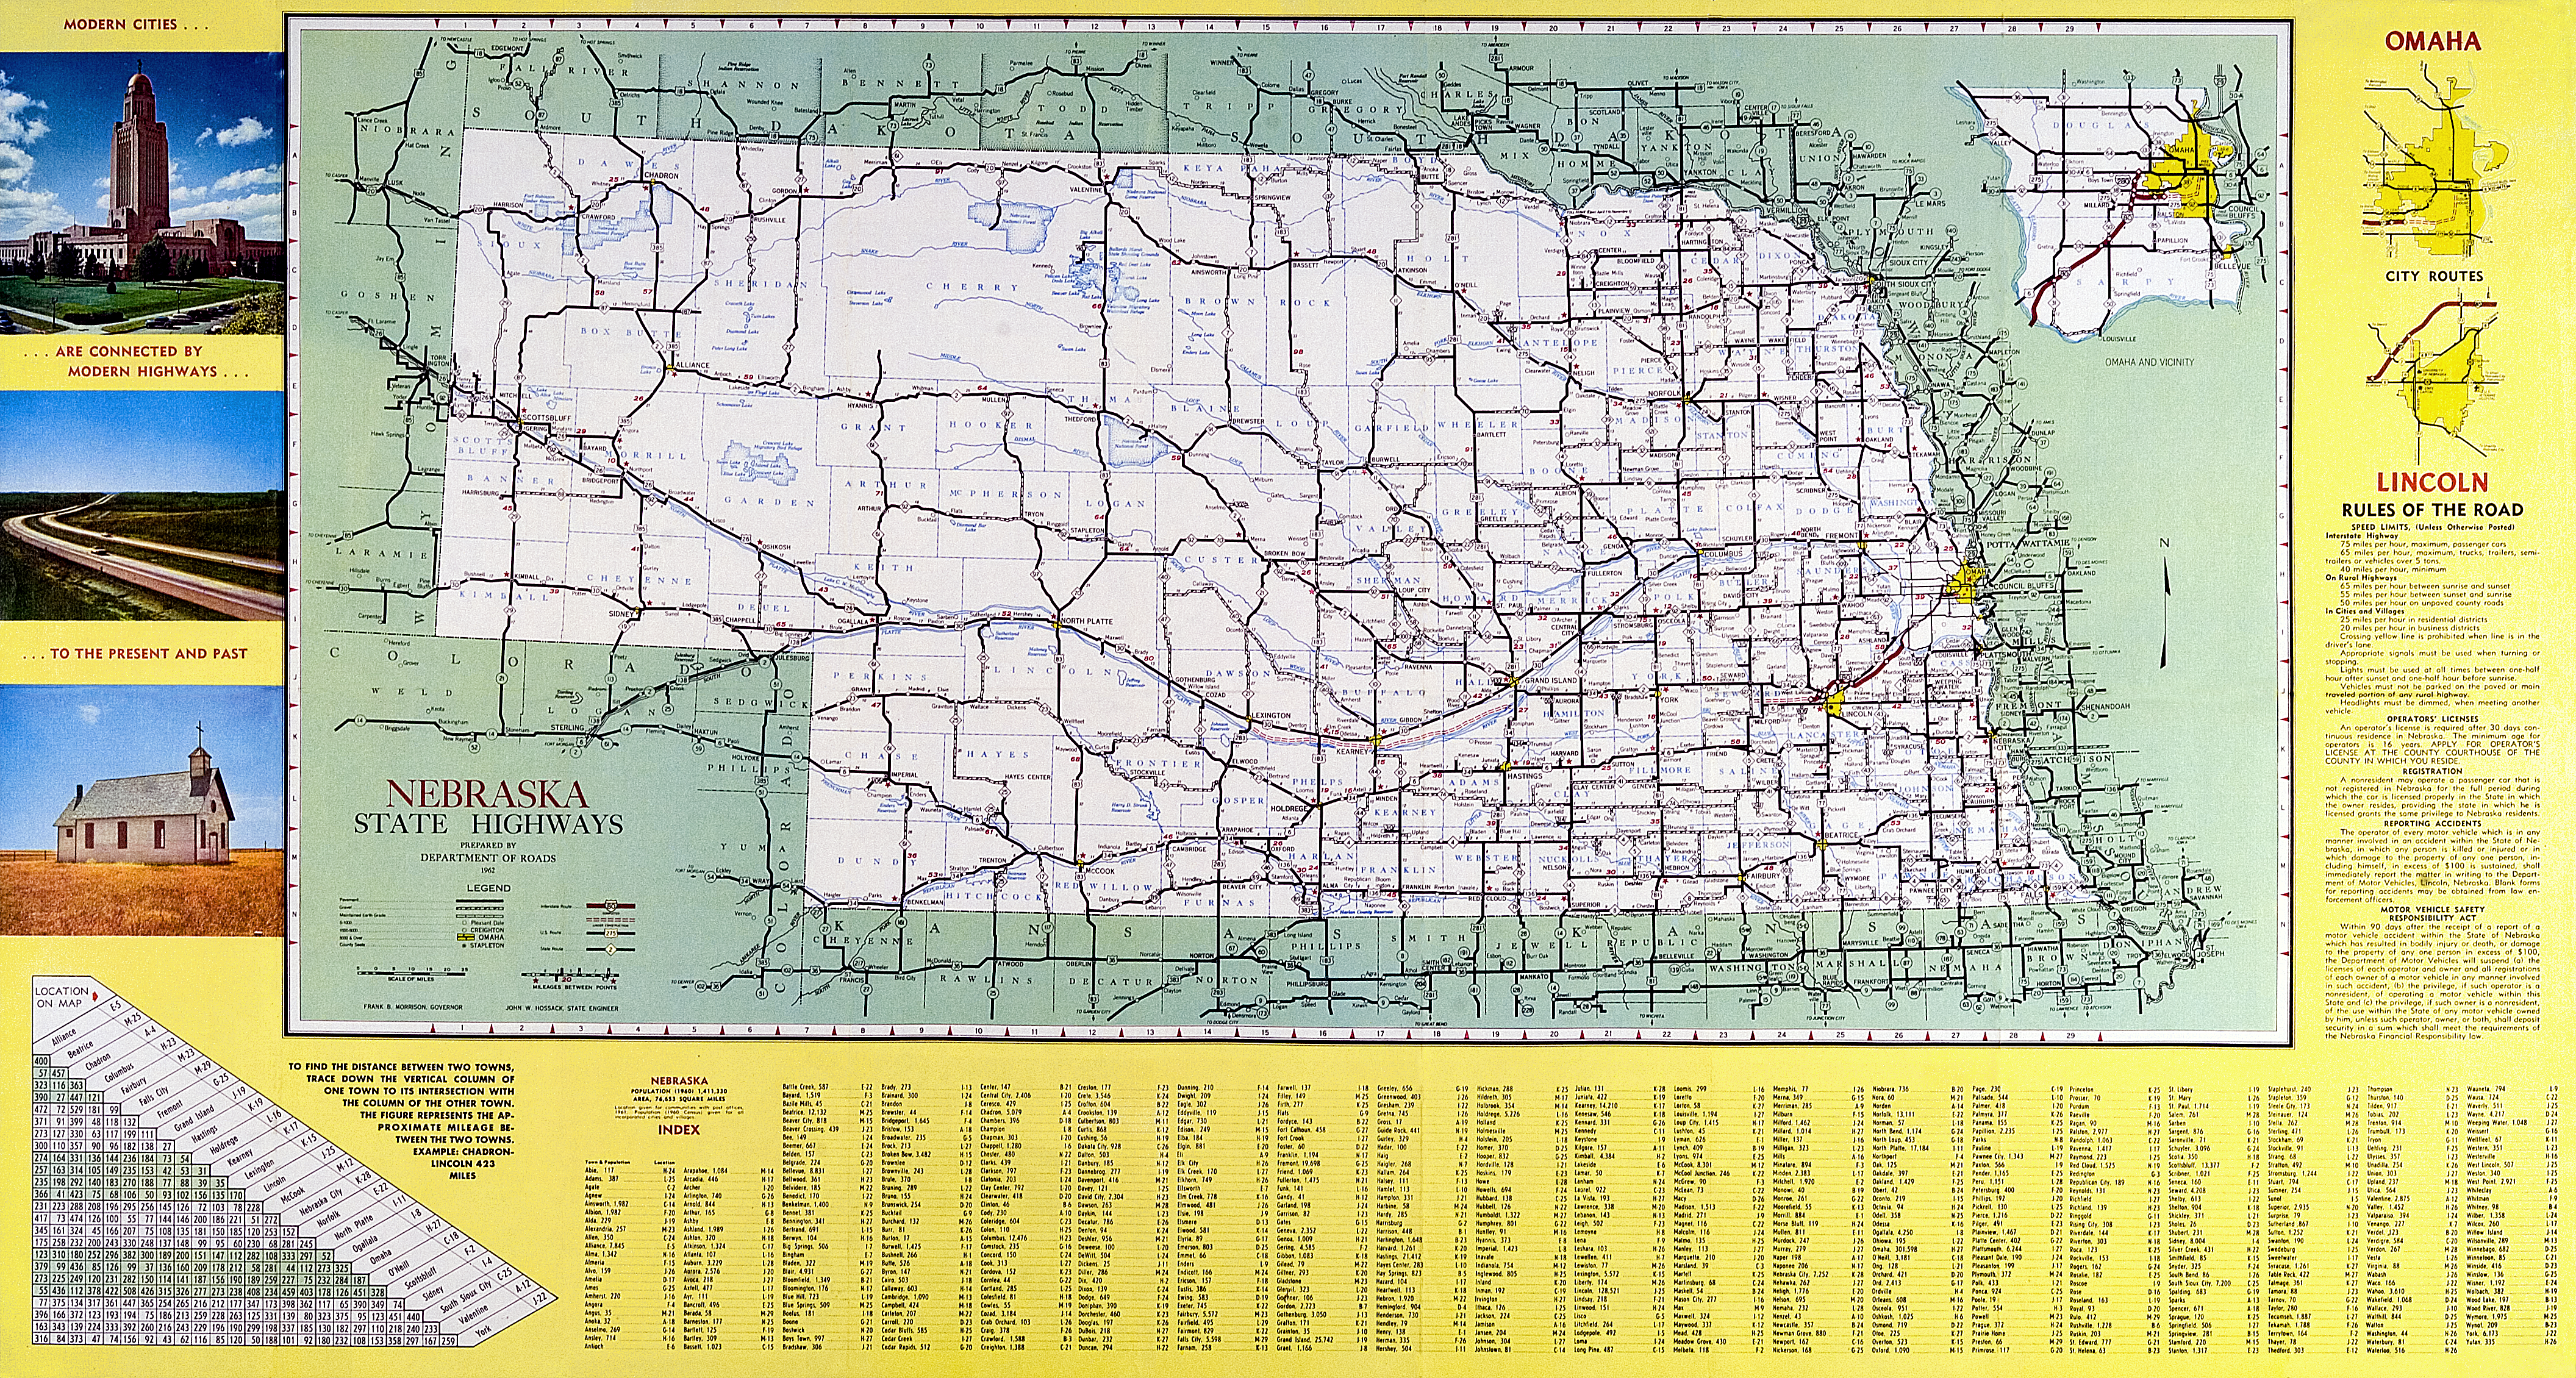 Fileofficial Map Nebraska State Highway System 1962png - Us-map-nebraska-state